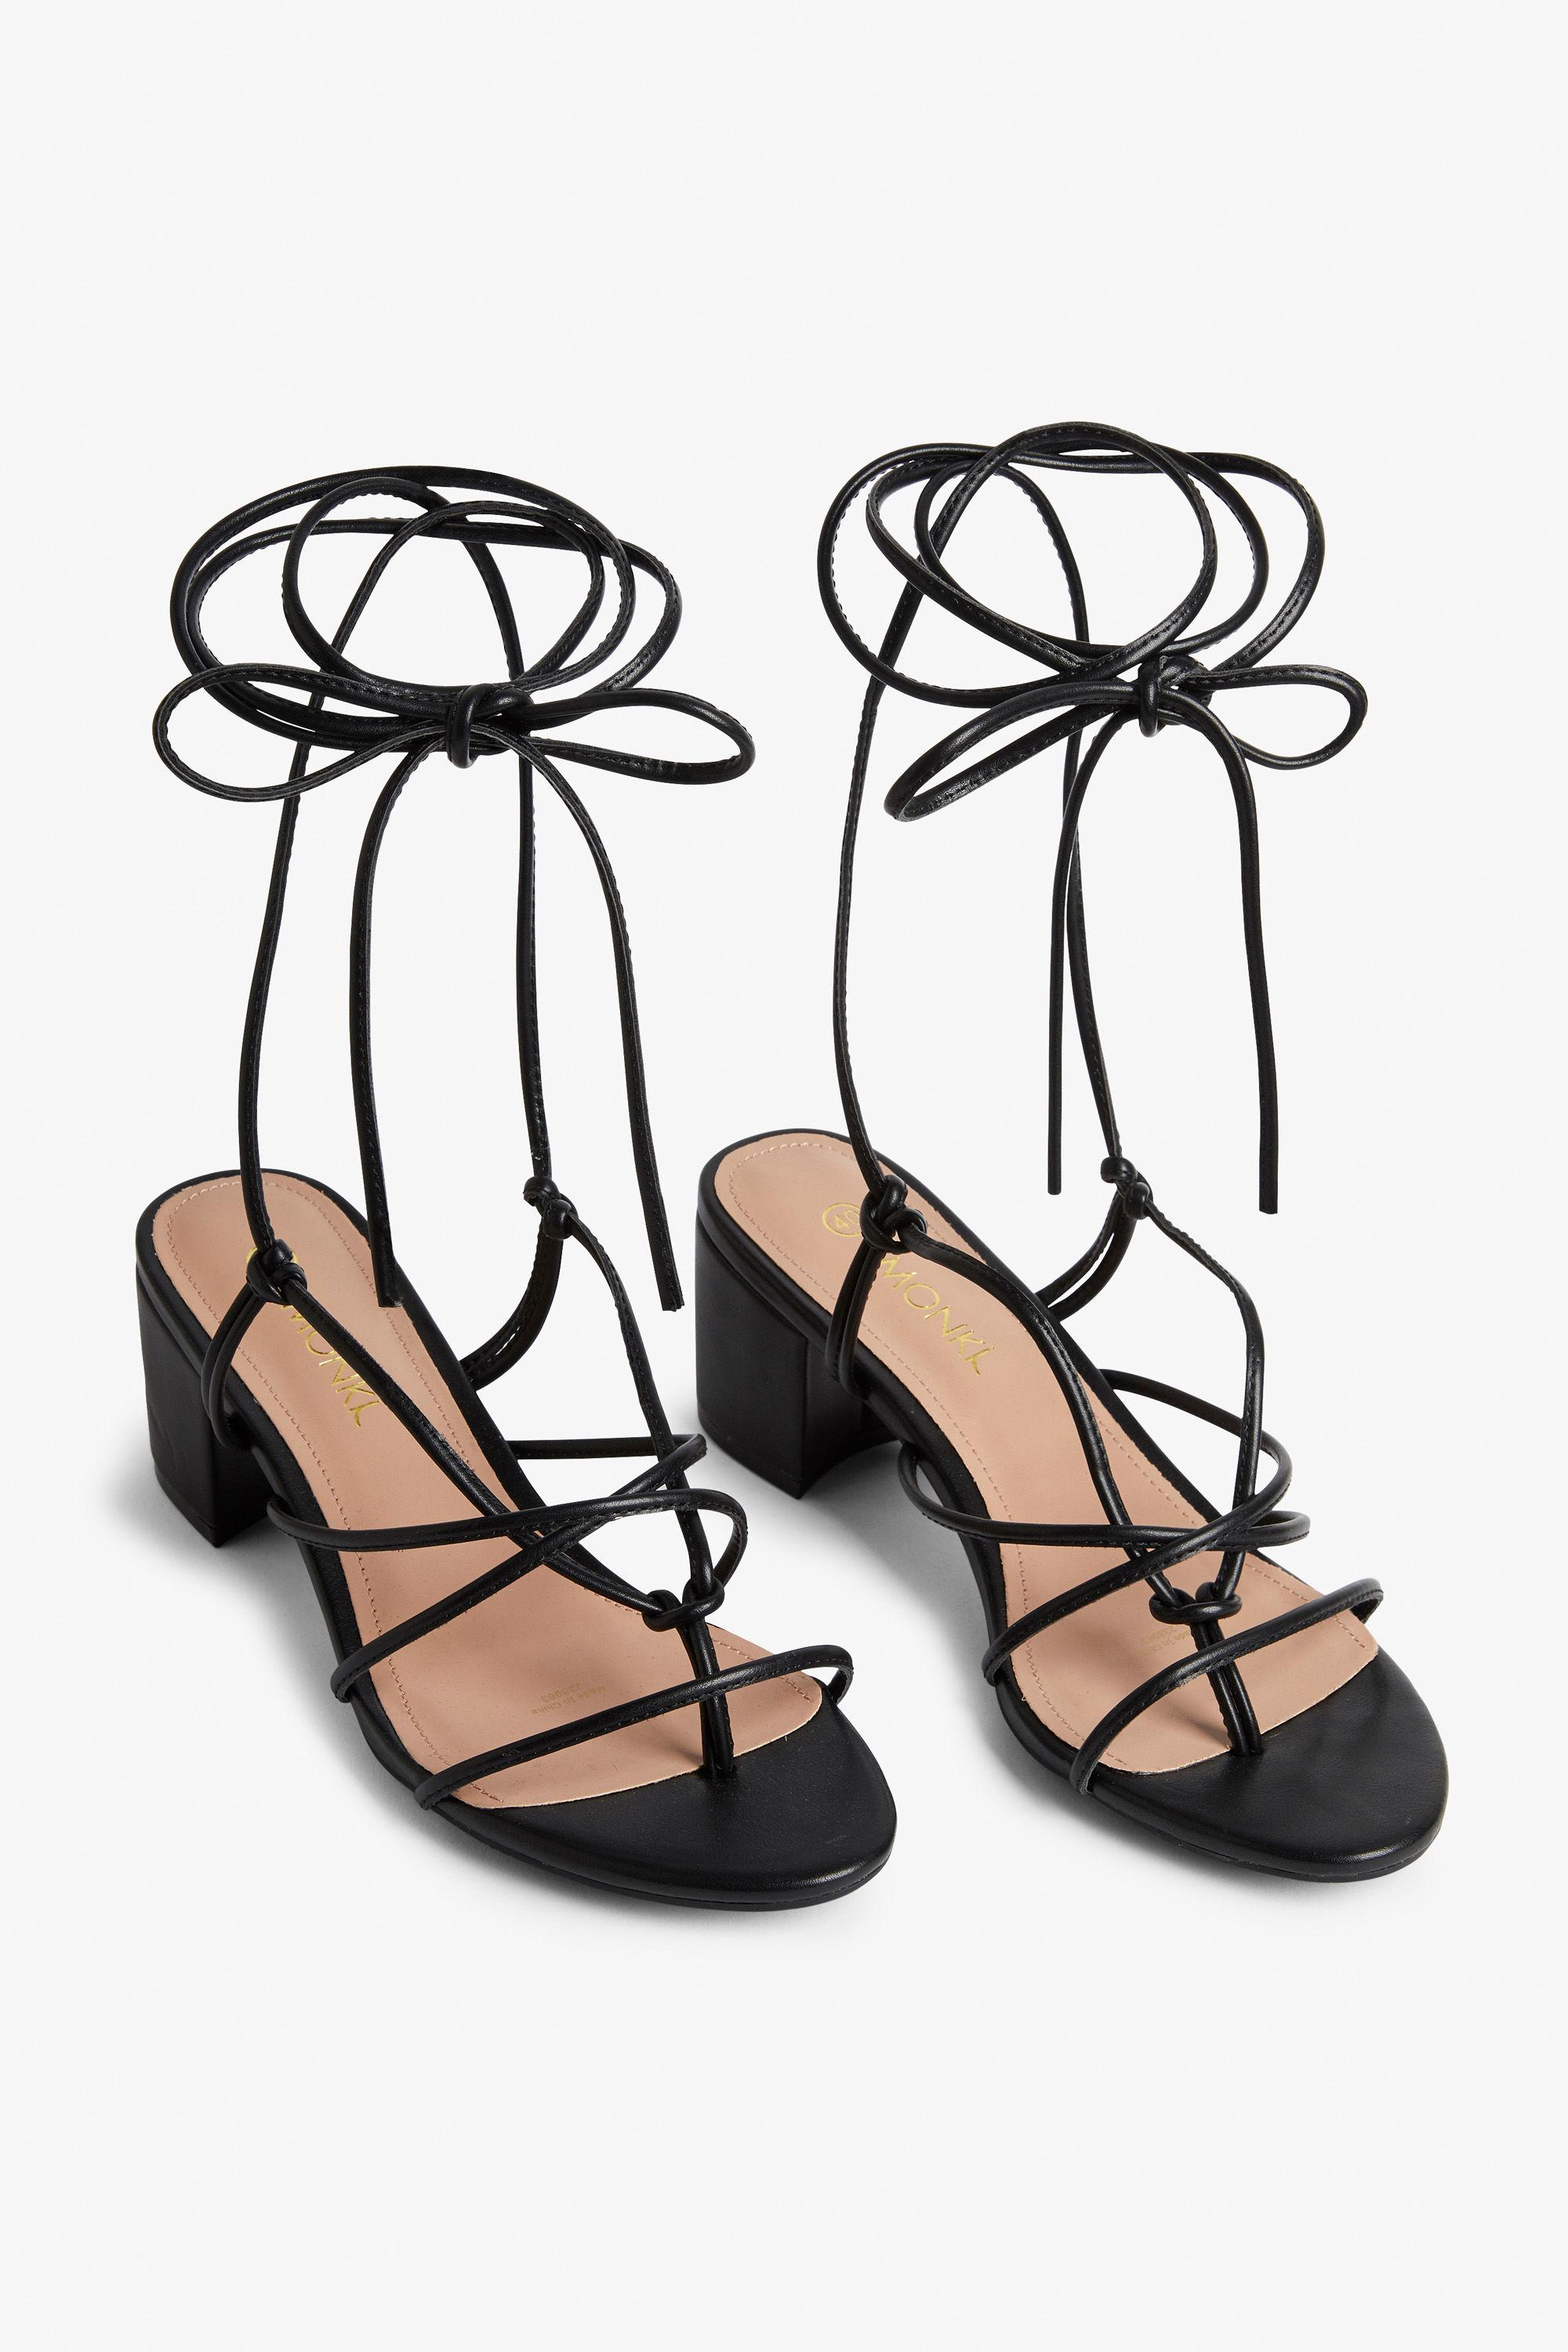 a7dede7371e2 Monki Heeled Ankle-wrap Sandal in Black - Lyst